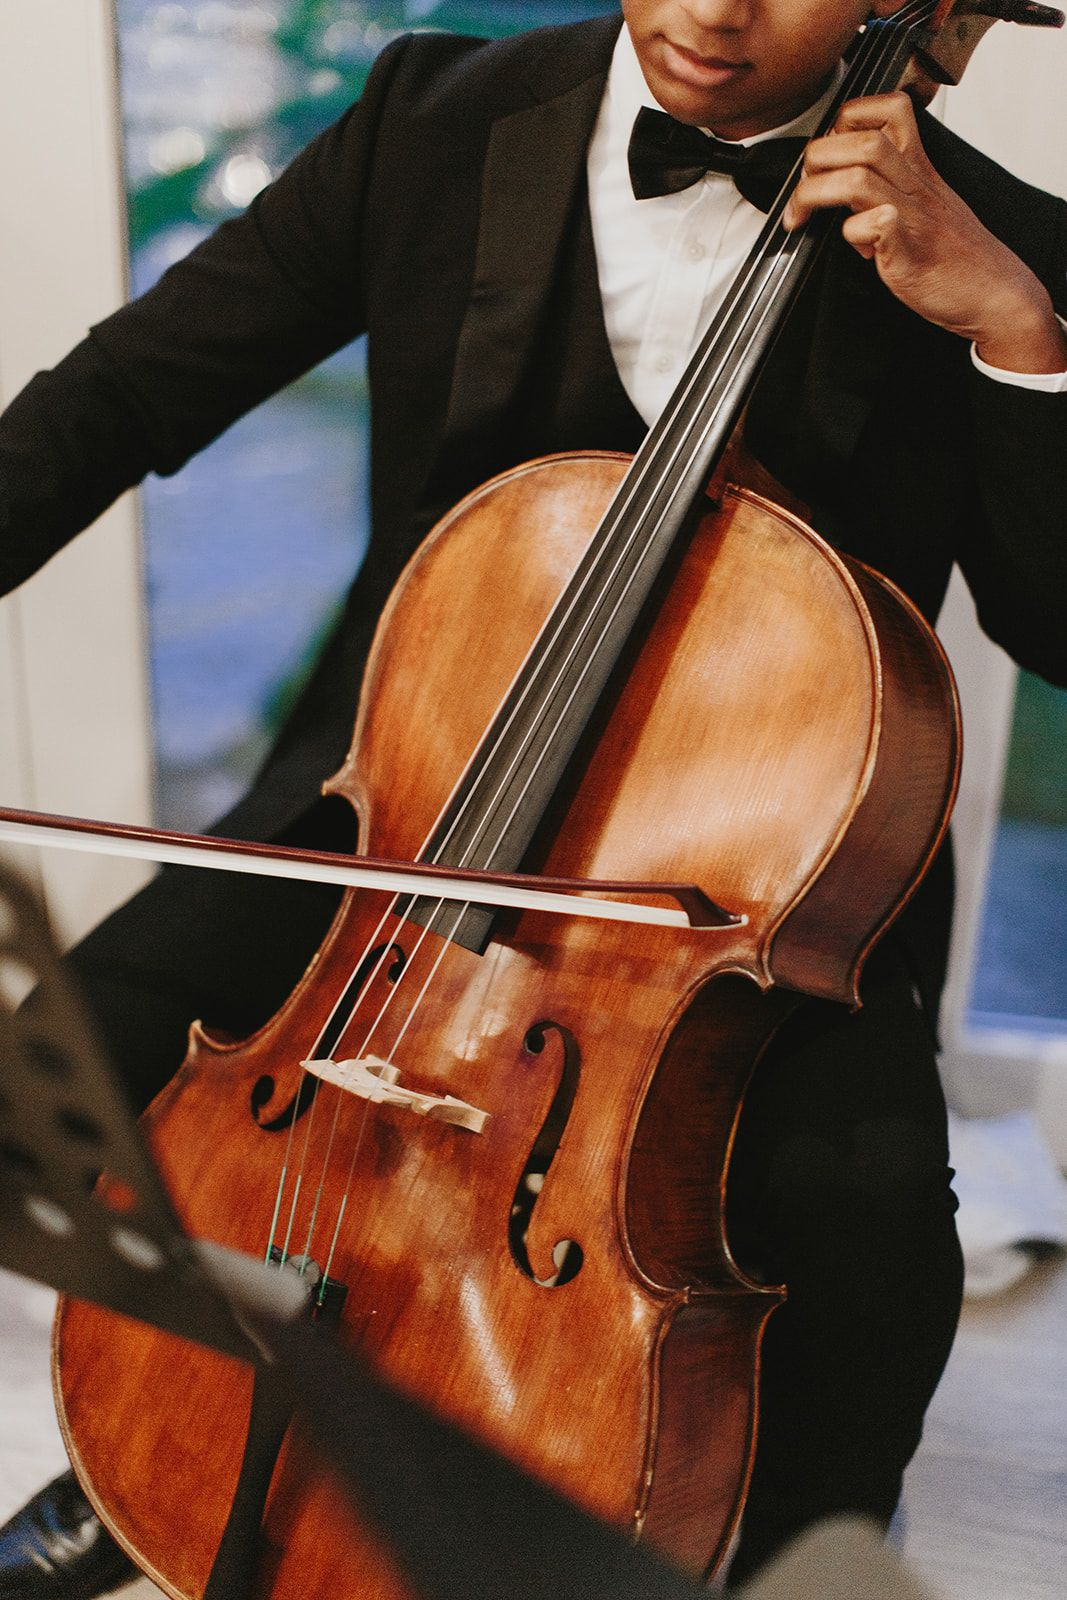 Wedding Cello Player in 2020 Small weddings ceremony